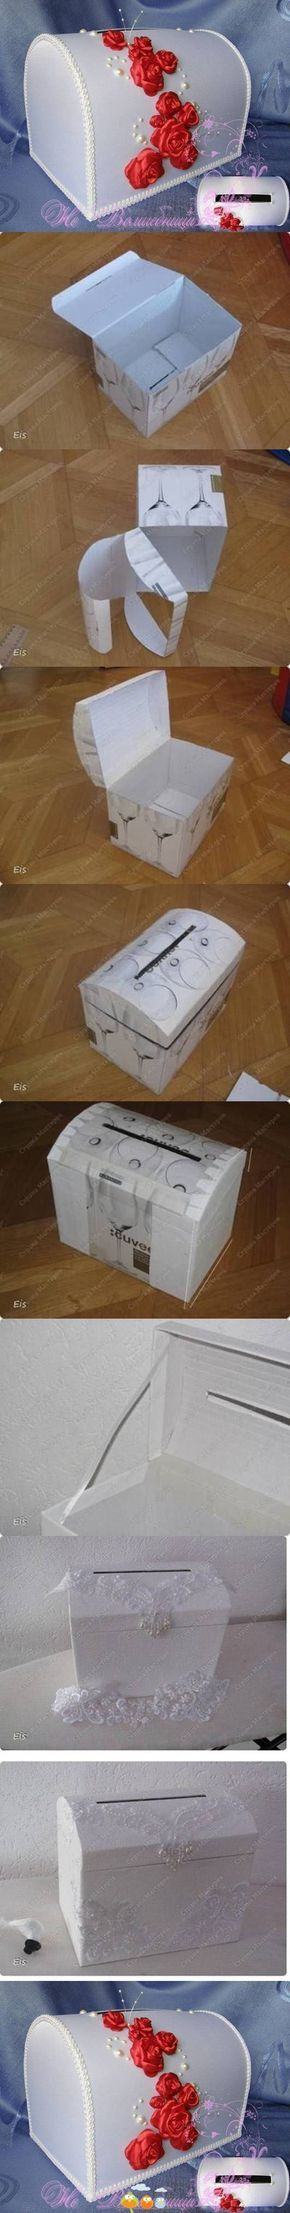 Great visual tutorial to re-purpose a box into a gift holder for a wedding.  This box can also be turned into a treasure chest for little pirates or a jewelry box for little princesses!  Endless possibilities for this project!